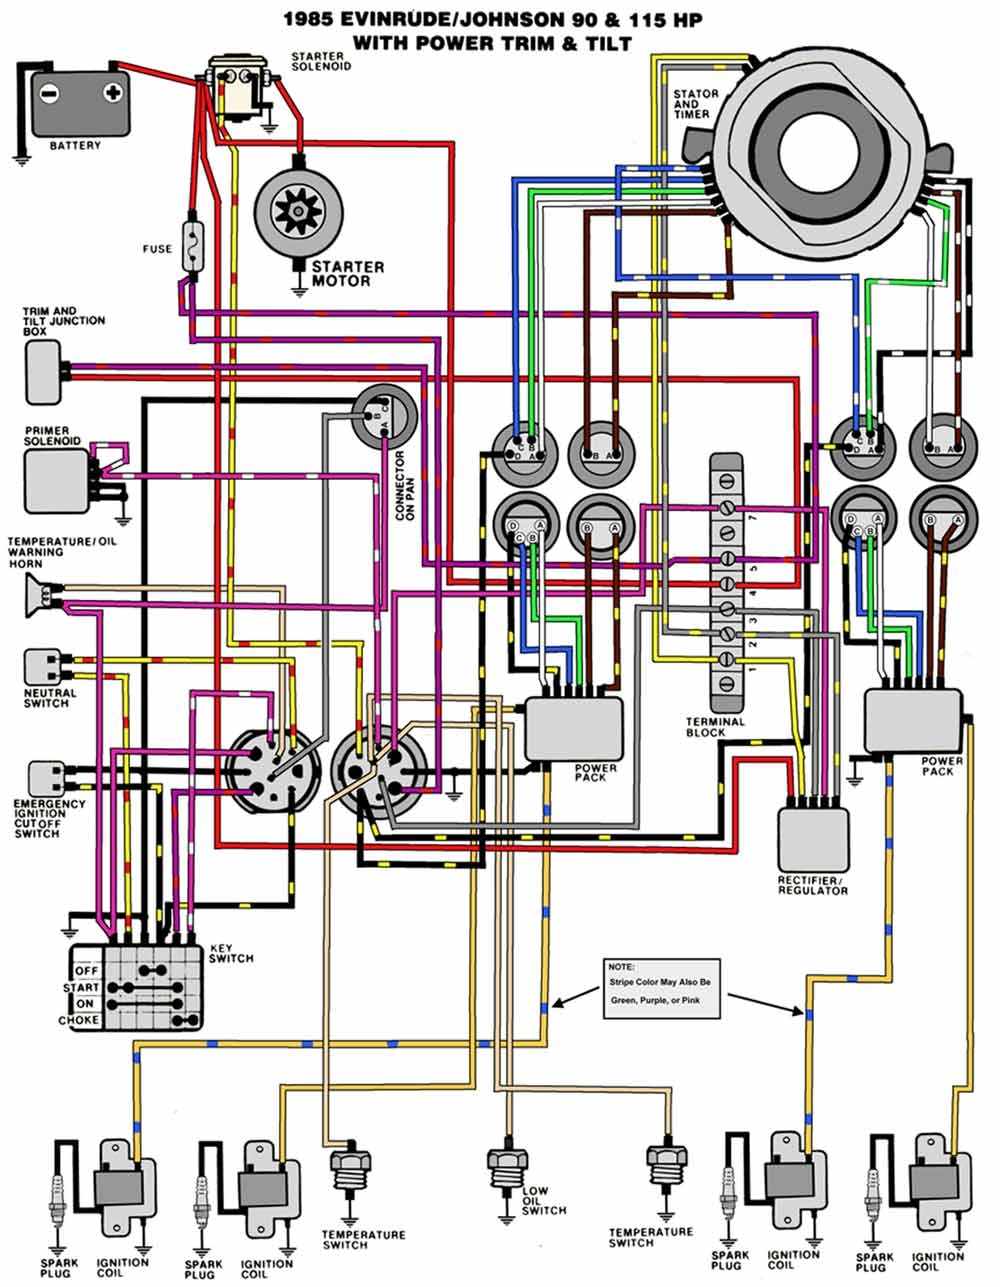 mercury outboard wiring diagram schematic Download-johnson wiring diagram circuit connection diagram u2022 rh scooplocal co Mariner Outboard Diagrams Mariner Outboard Diagrams 11-i